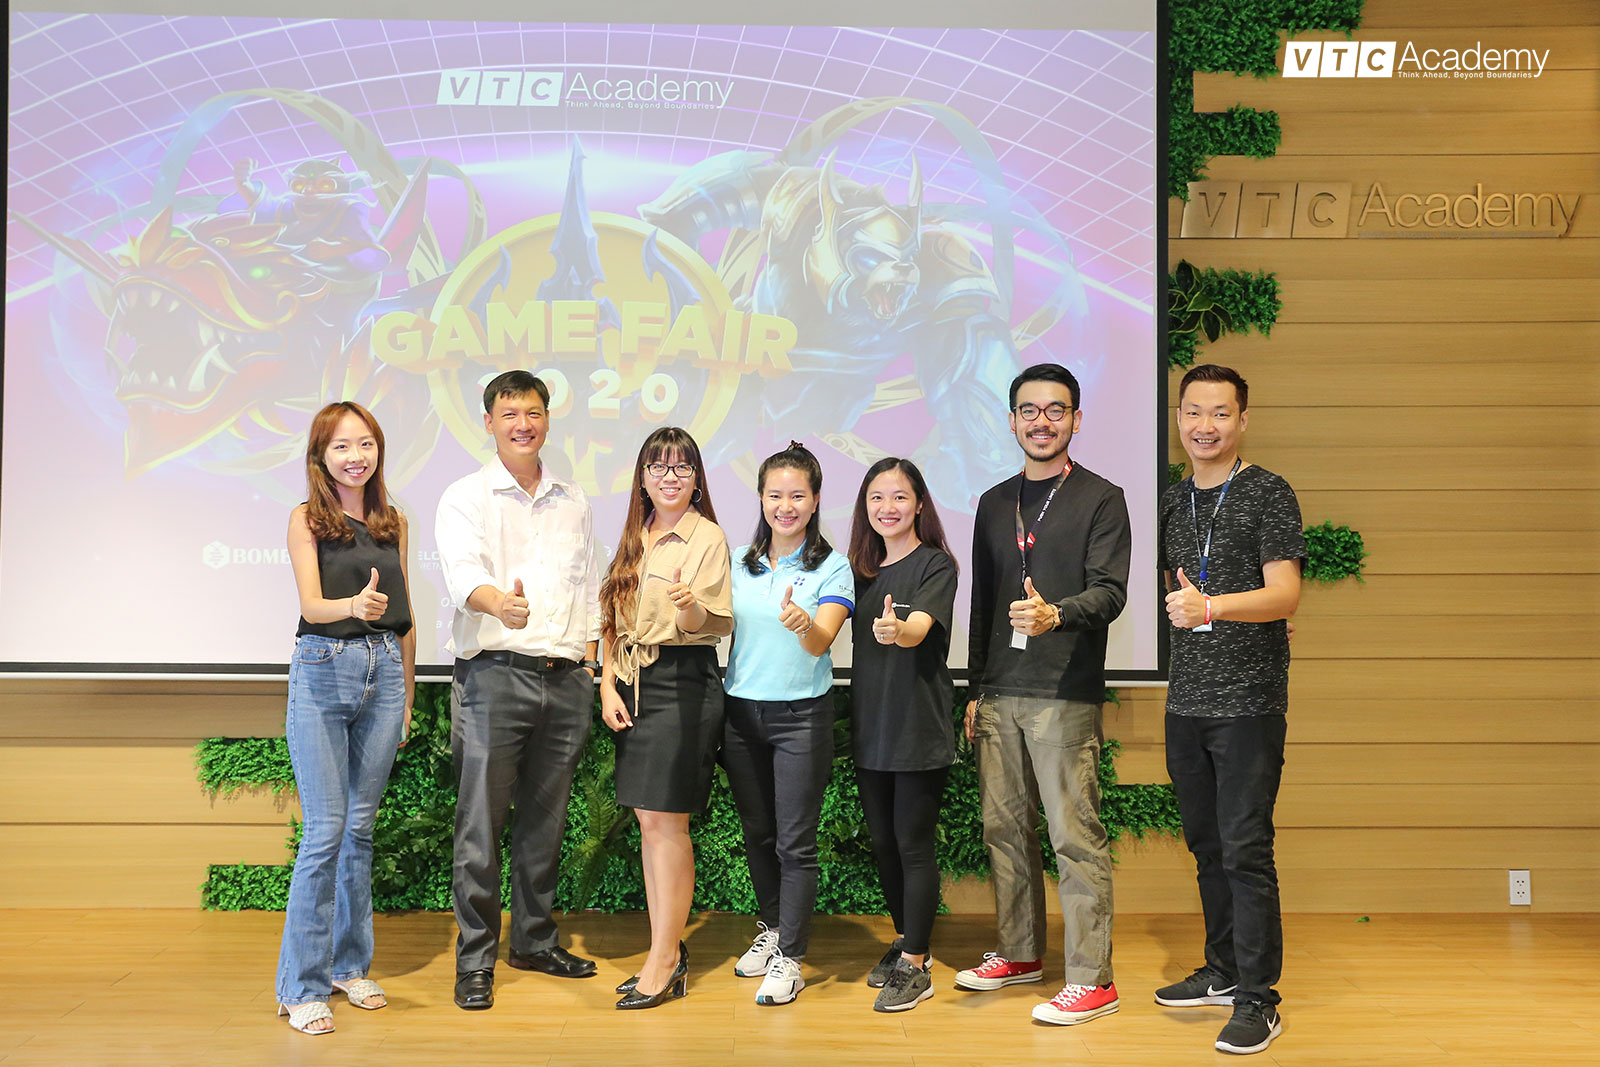 game-fair-vtc-academy-22